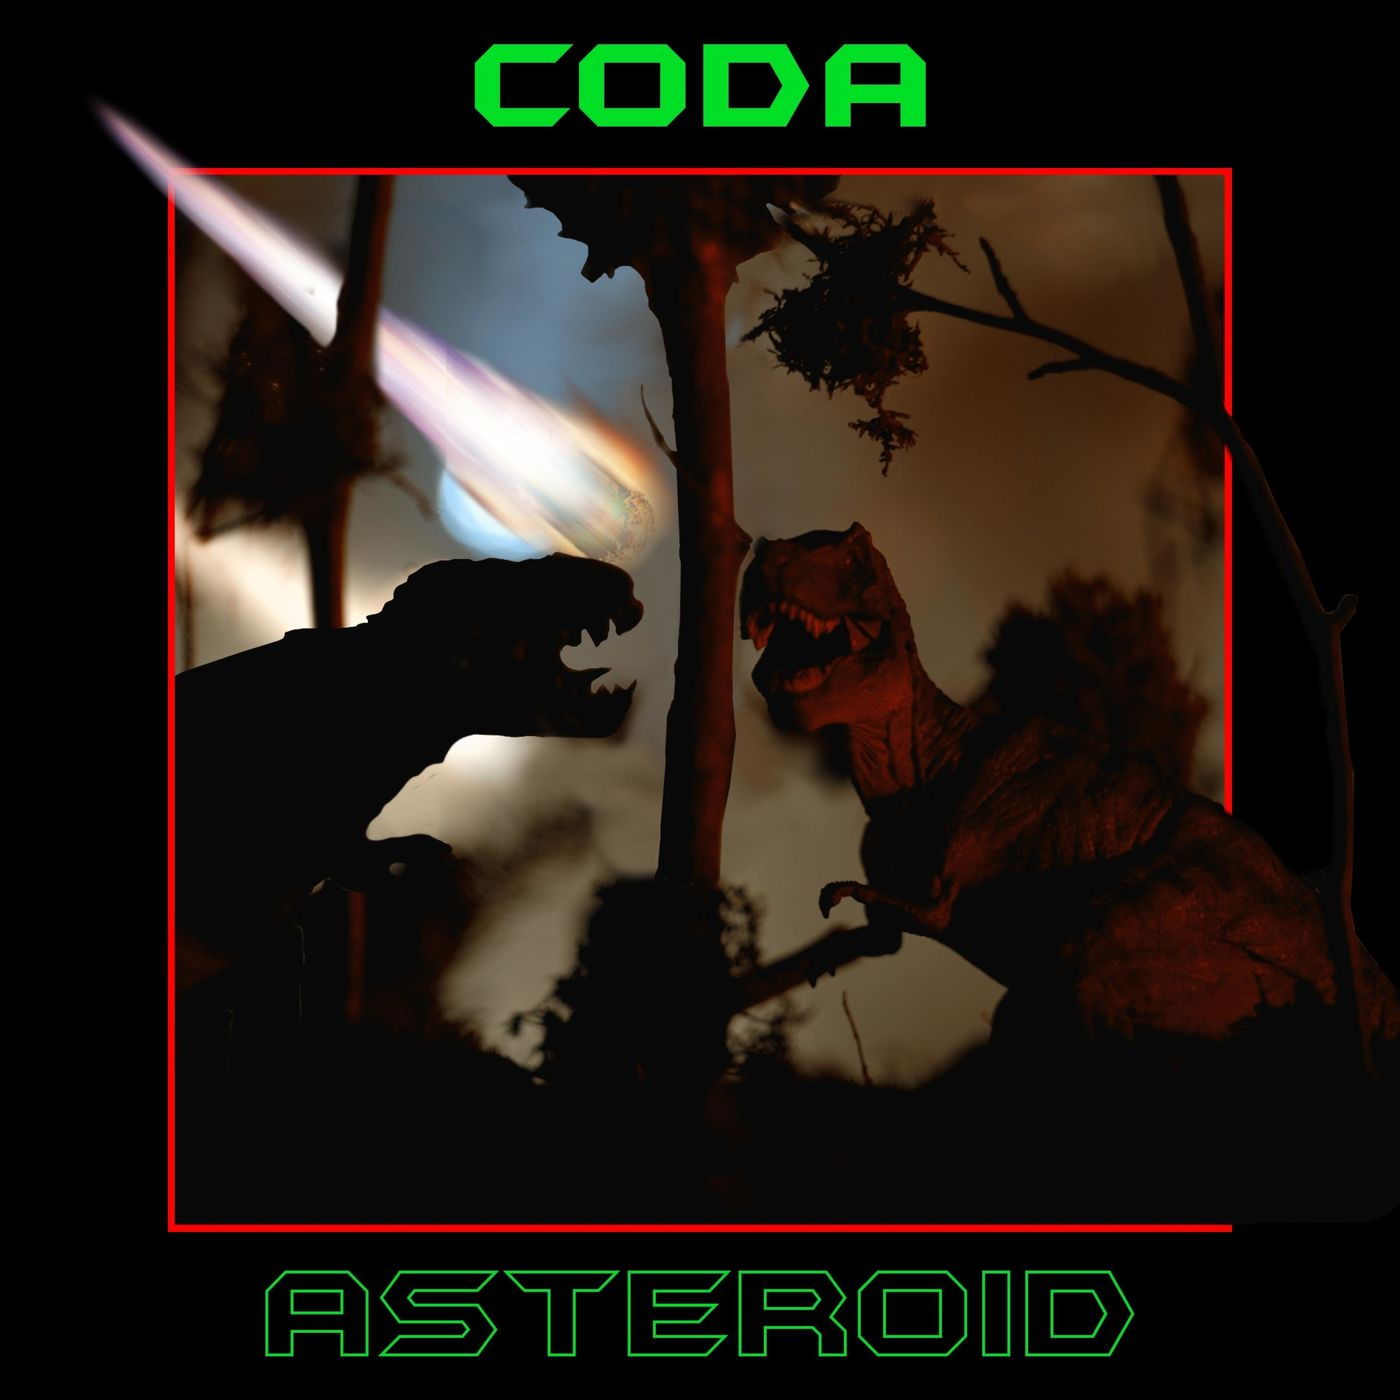 Coda - Asteroid [single] (2021)